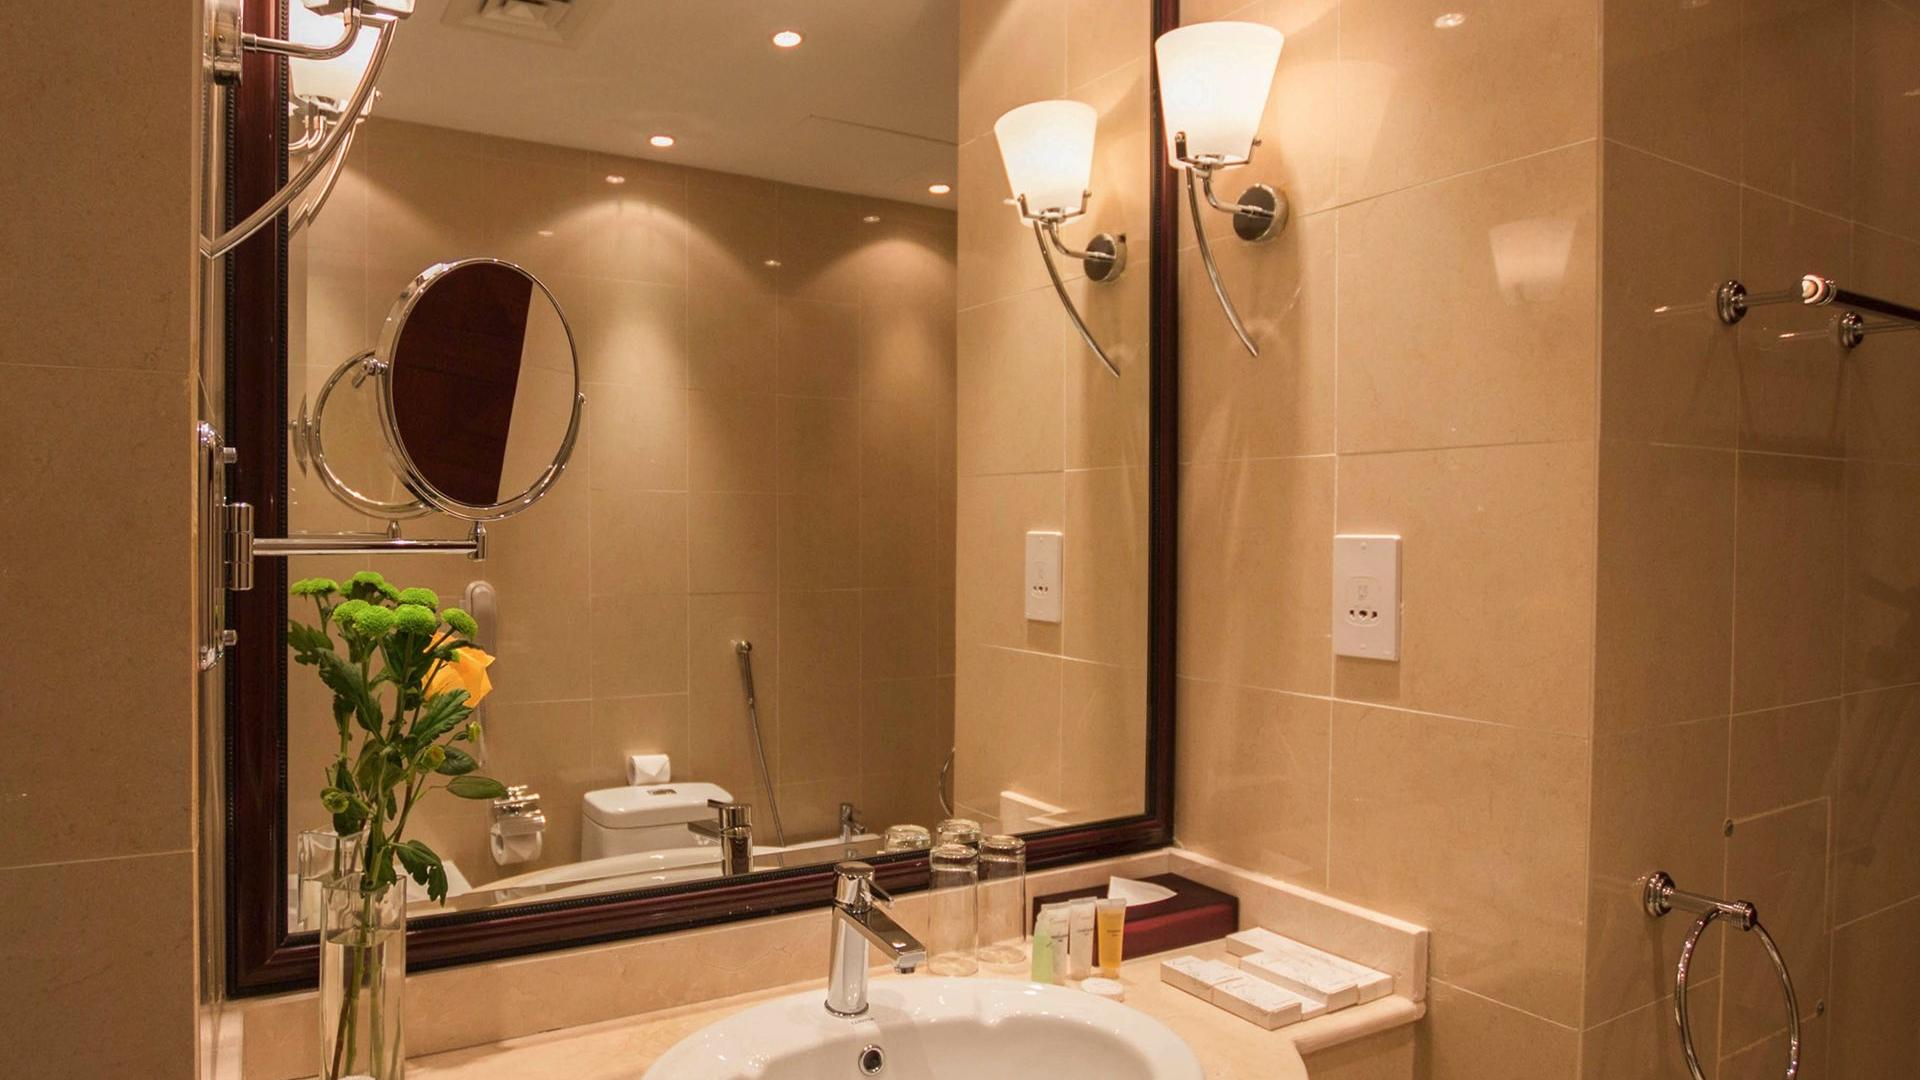 Sink at Strato Hotel by Warwick